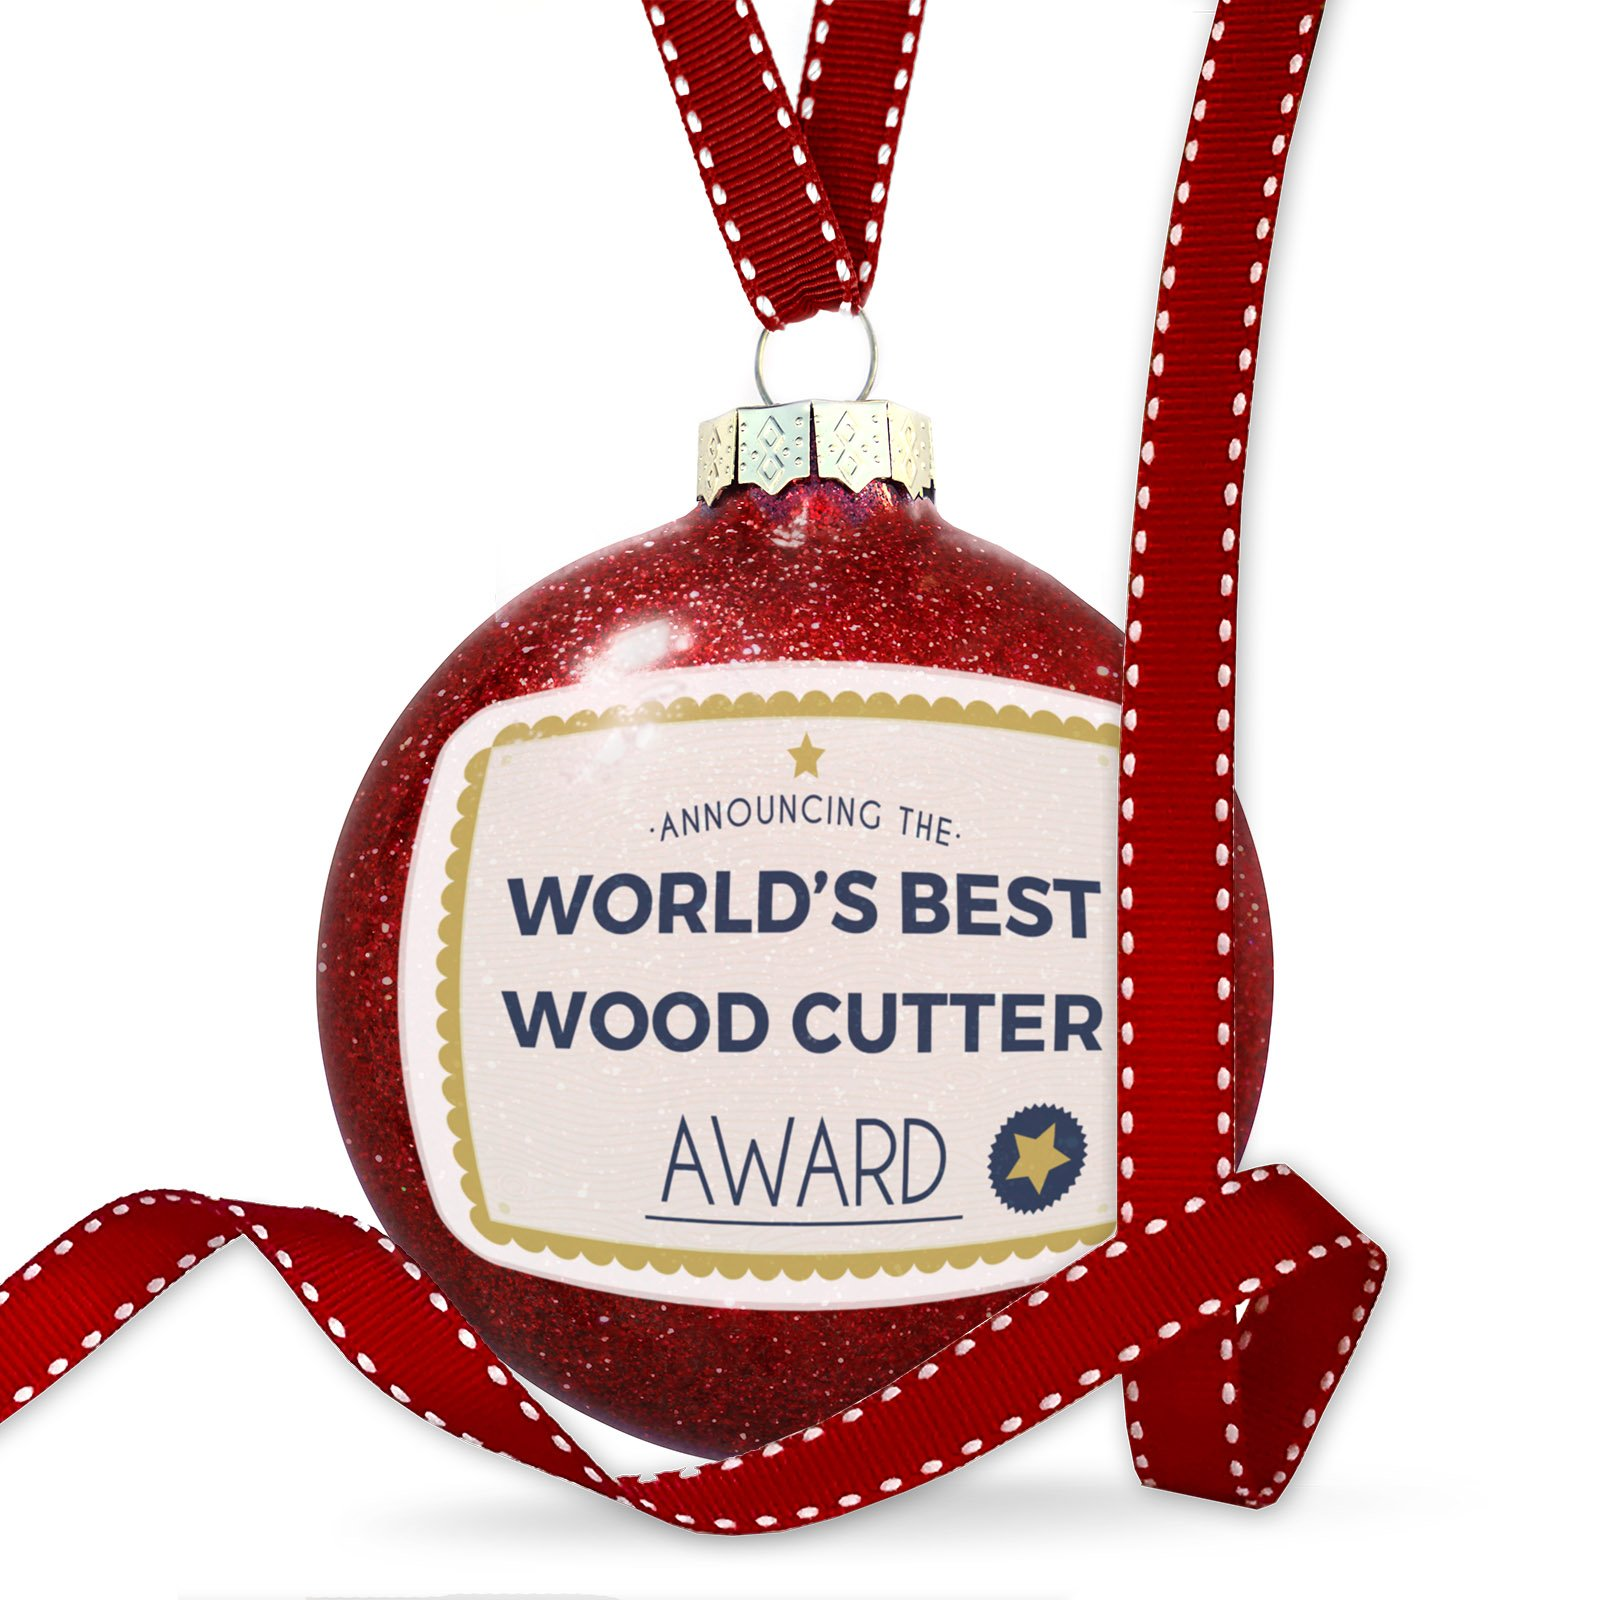 Christmas Decoration Worlds Best Wood Cutter Certificate Award Ornament by NEONBLOND (Image #1)